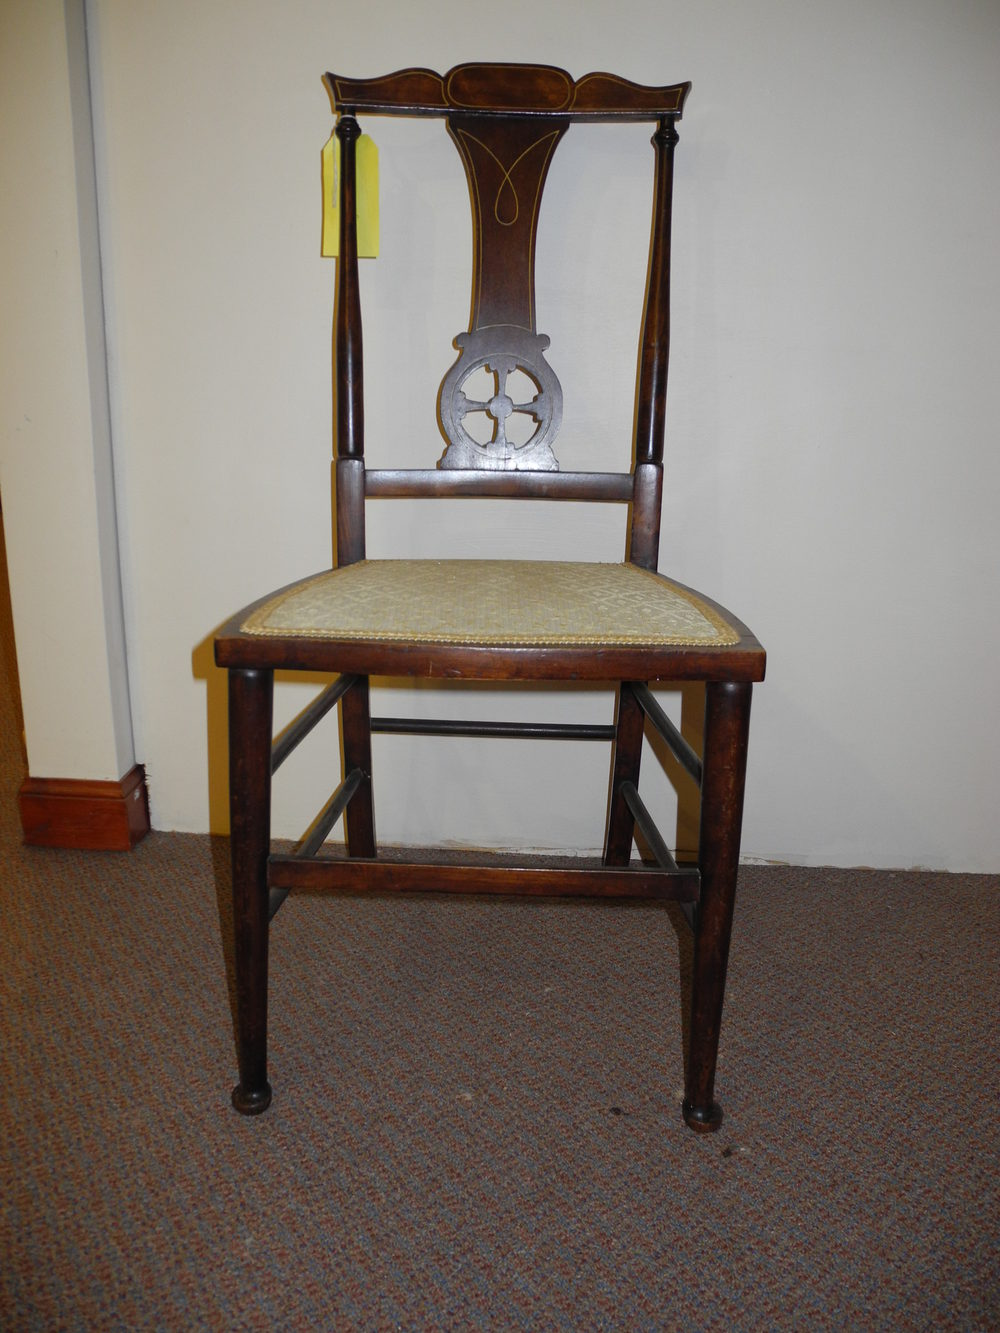 edwardian bedroom chairs. nice edwardian bedroom chair chairs d